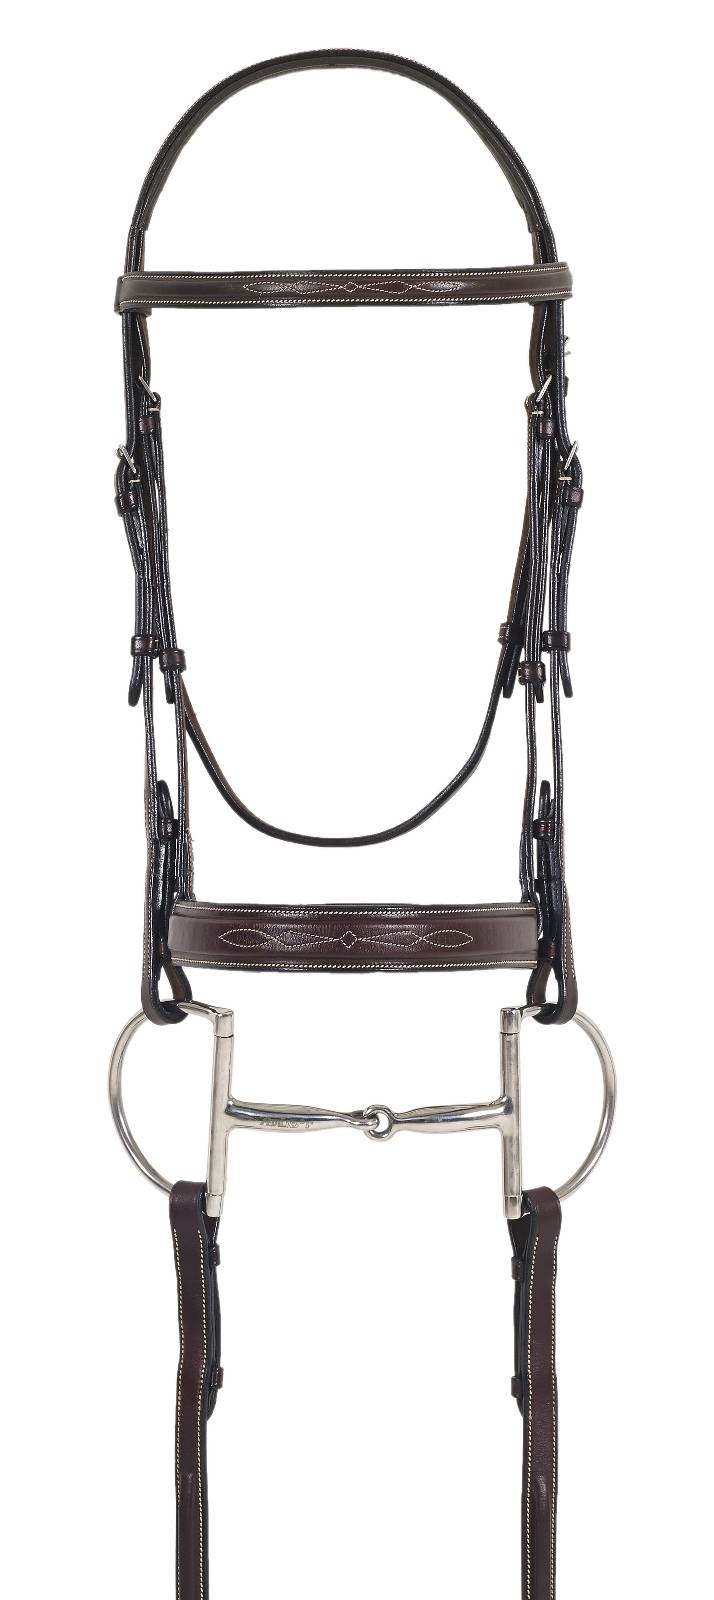 Ovation Fancy Wide Nose Bridle with Comfort Crown and Laced Reins